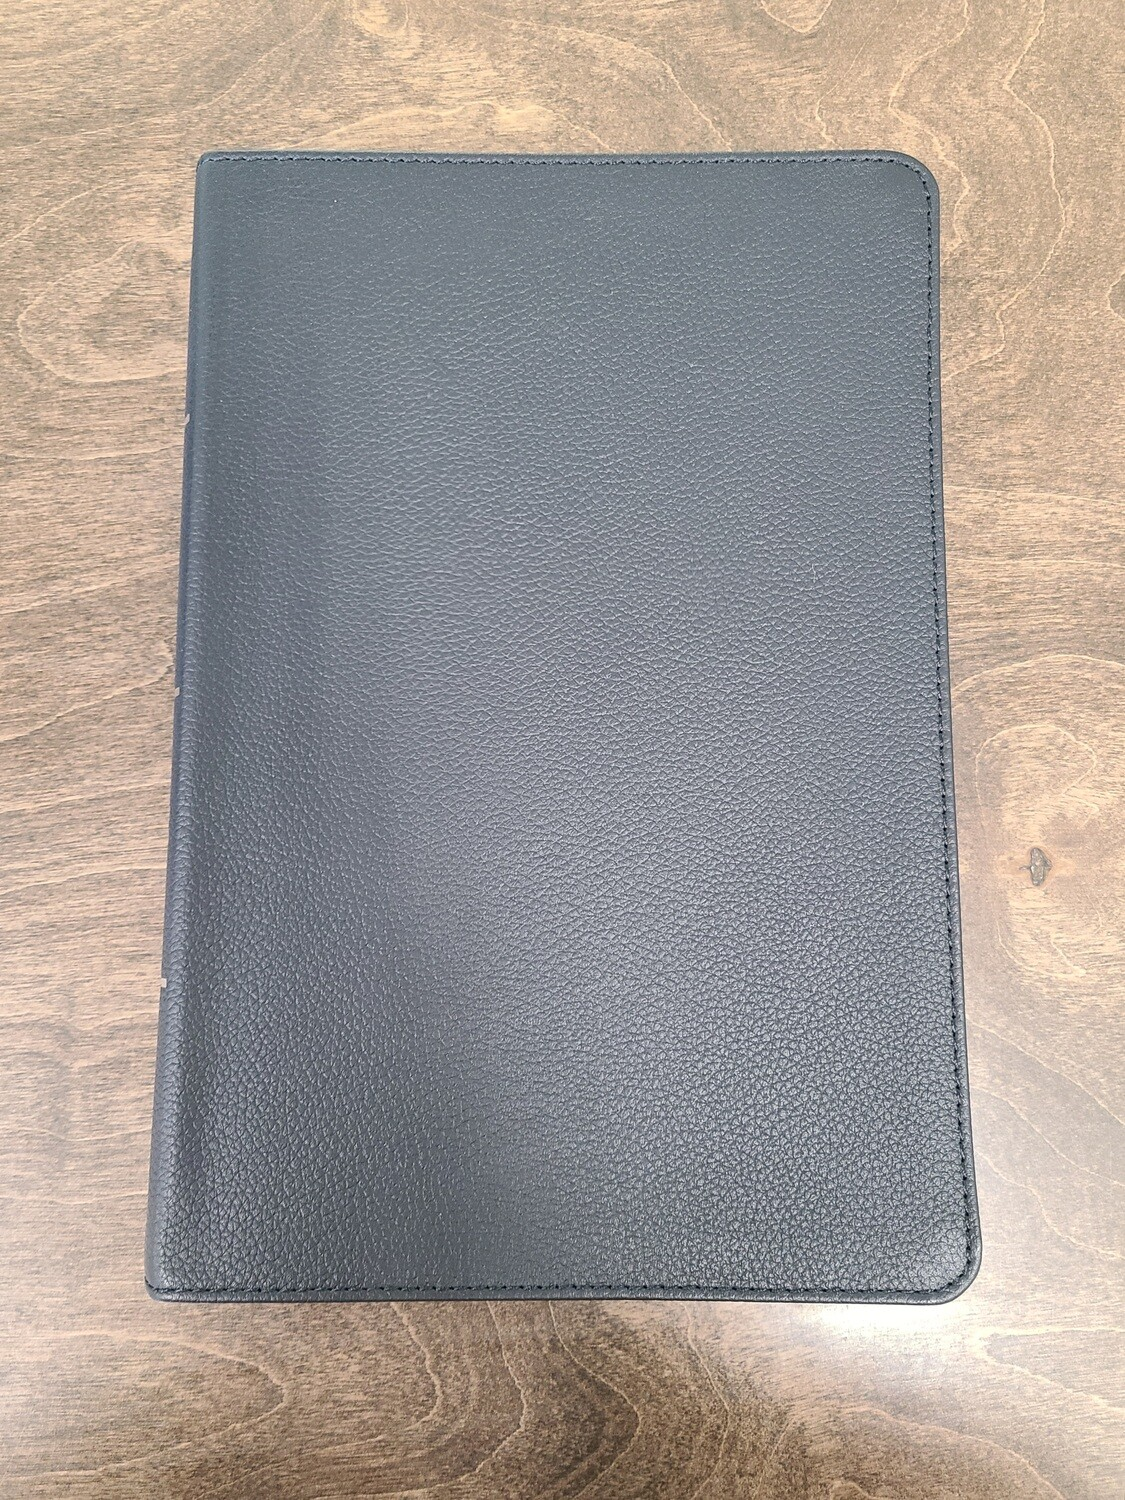 CSB Holman Giant Print Reference Bible - Black Genuine Leather